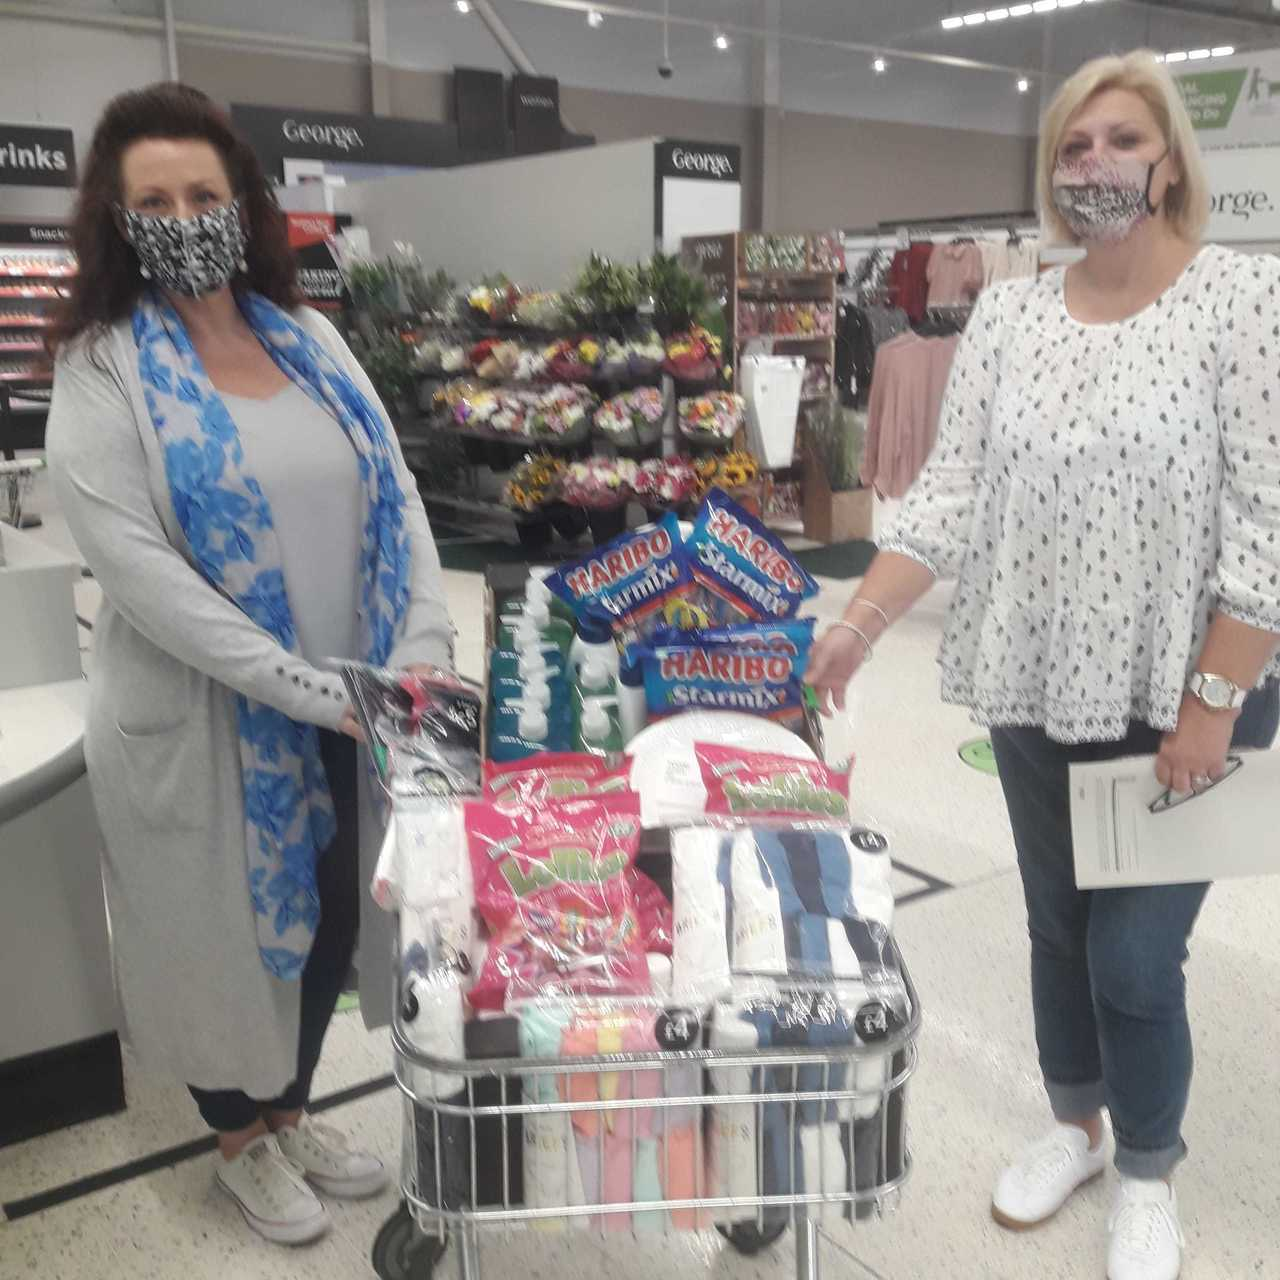 Donations  | Asda South Shields